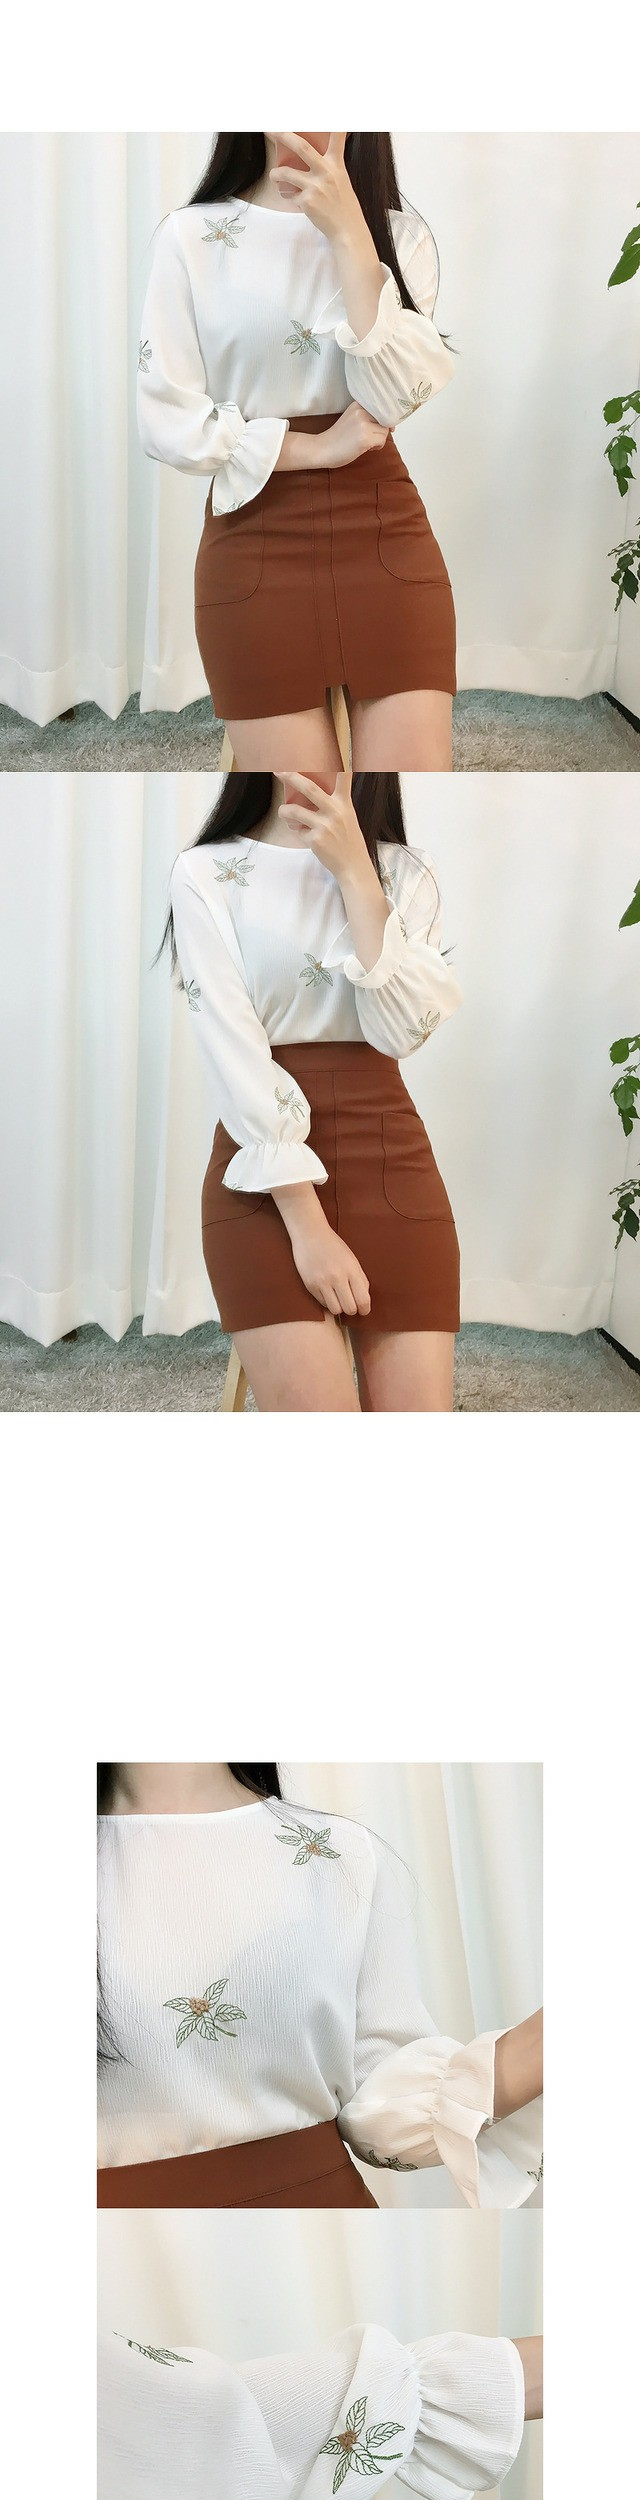 Mary Flower Blouse